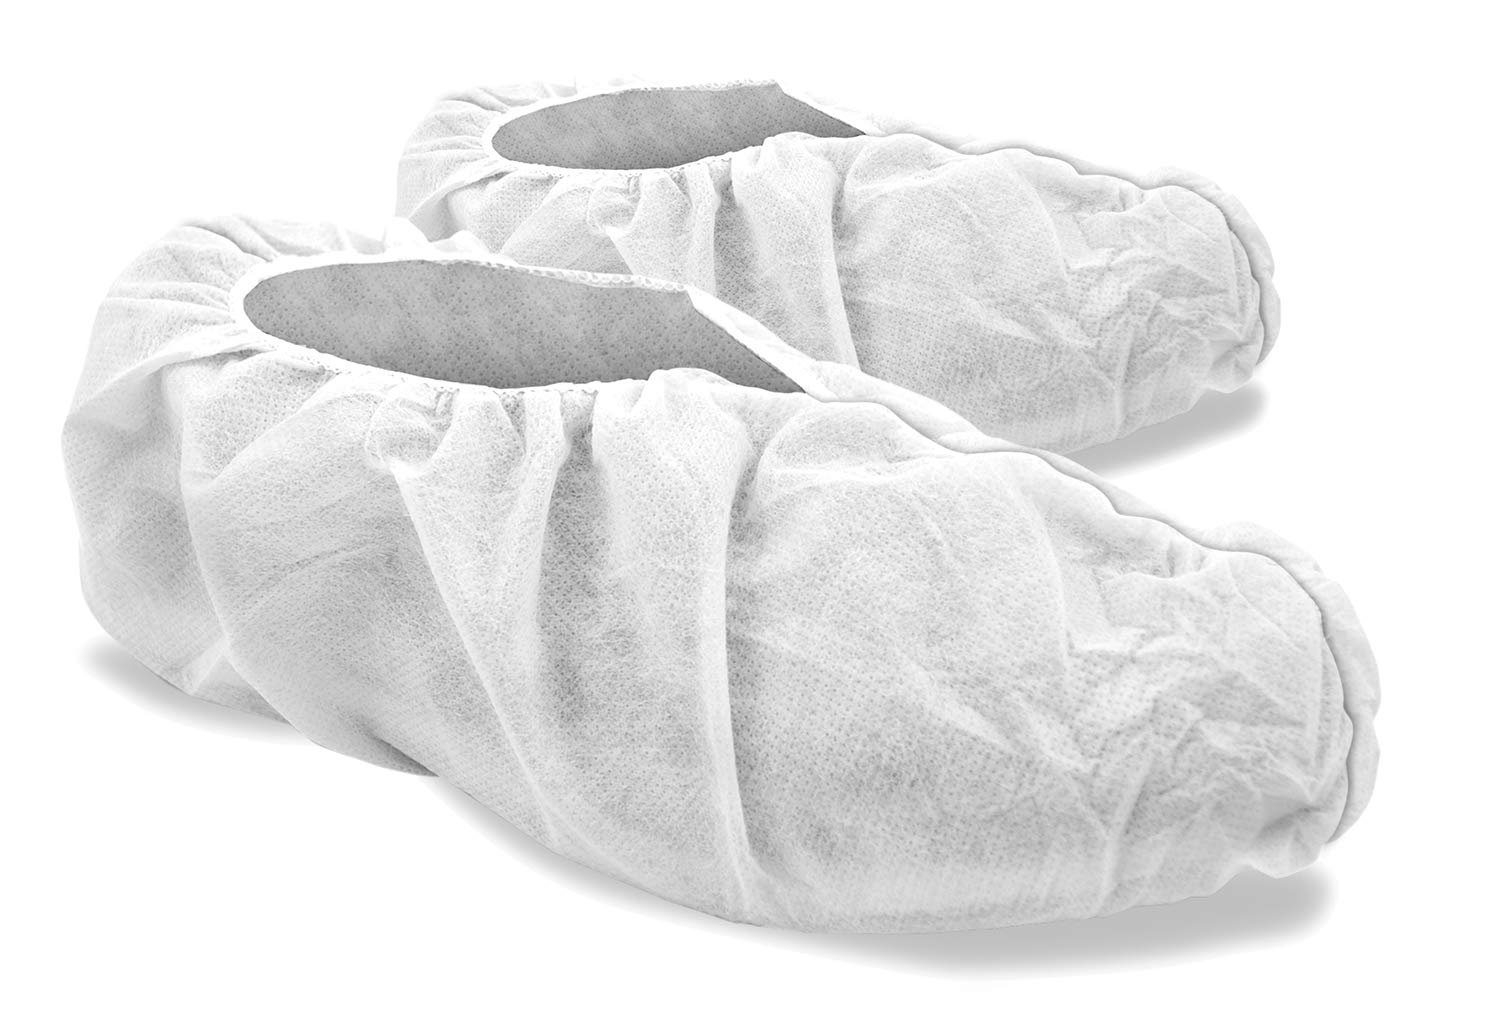 SAS Safety 6883-L Polypropylene shoe covers, Box of 150 pairs by SAS Safety